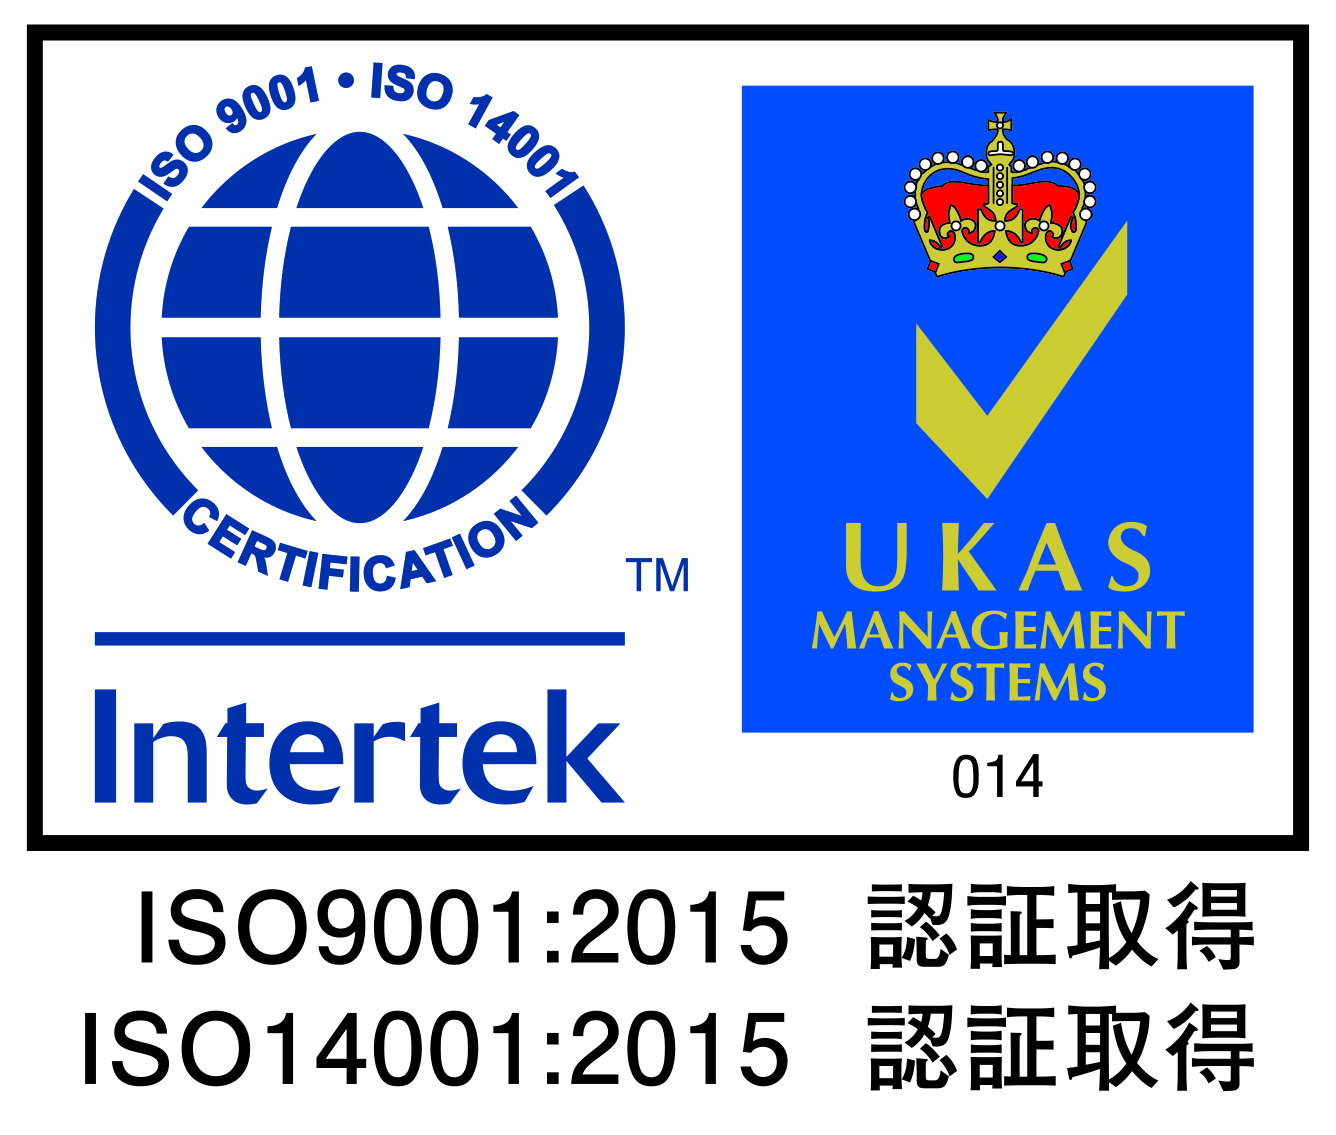 iso9001:2015,iso14001:2015認証取得